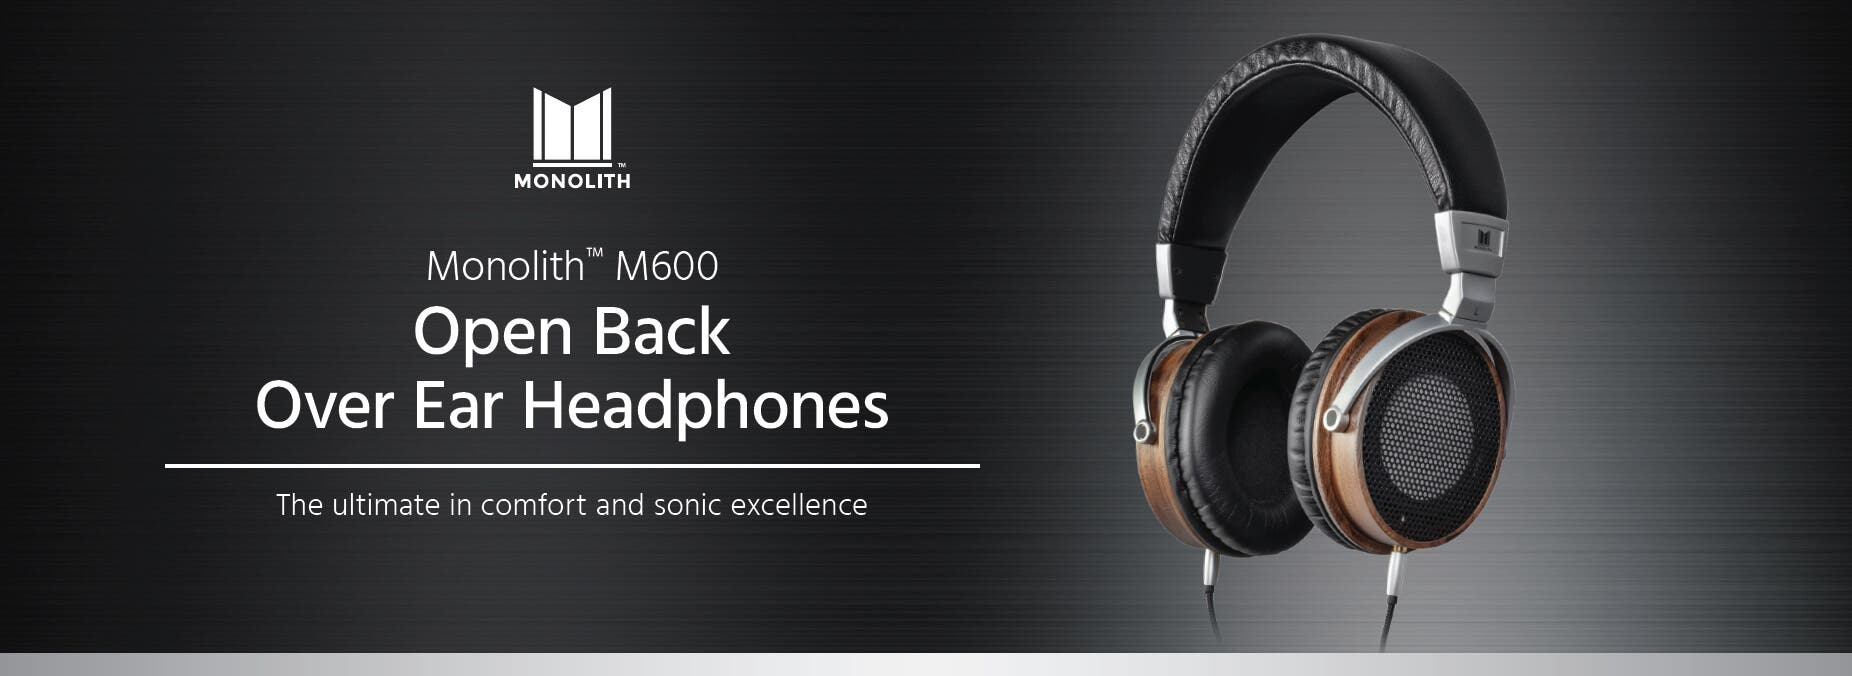 M600 Headphones